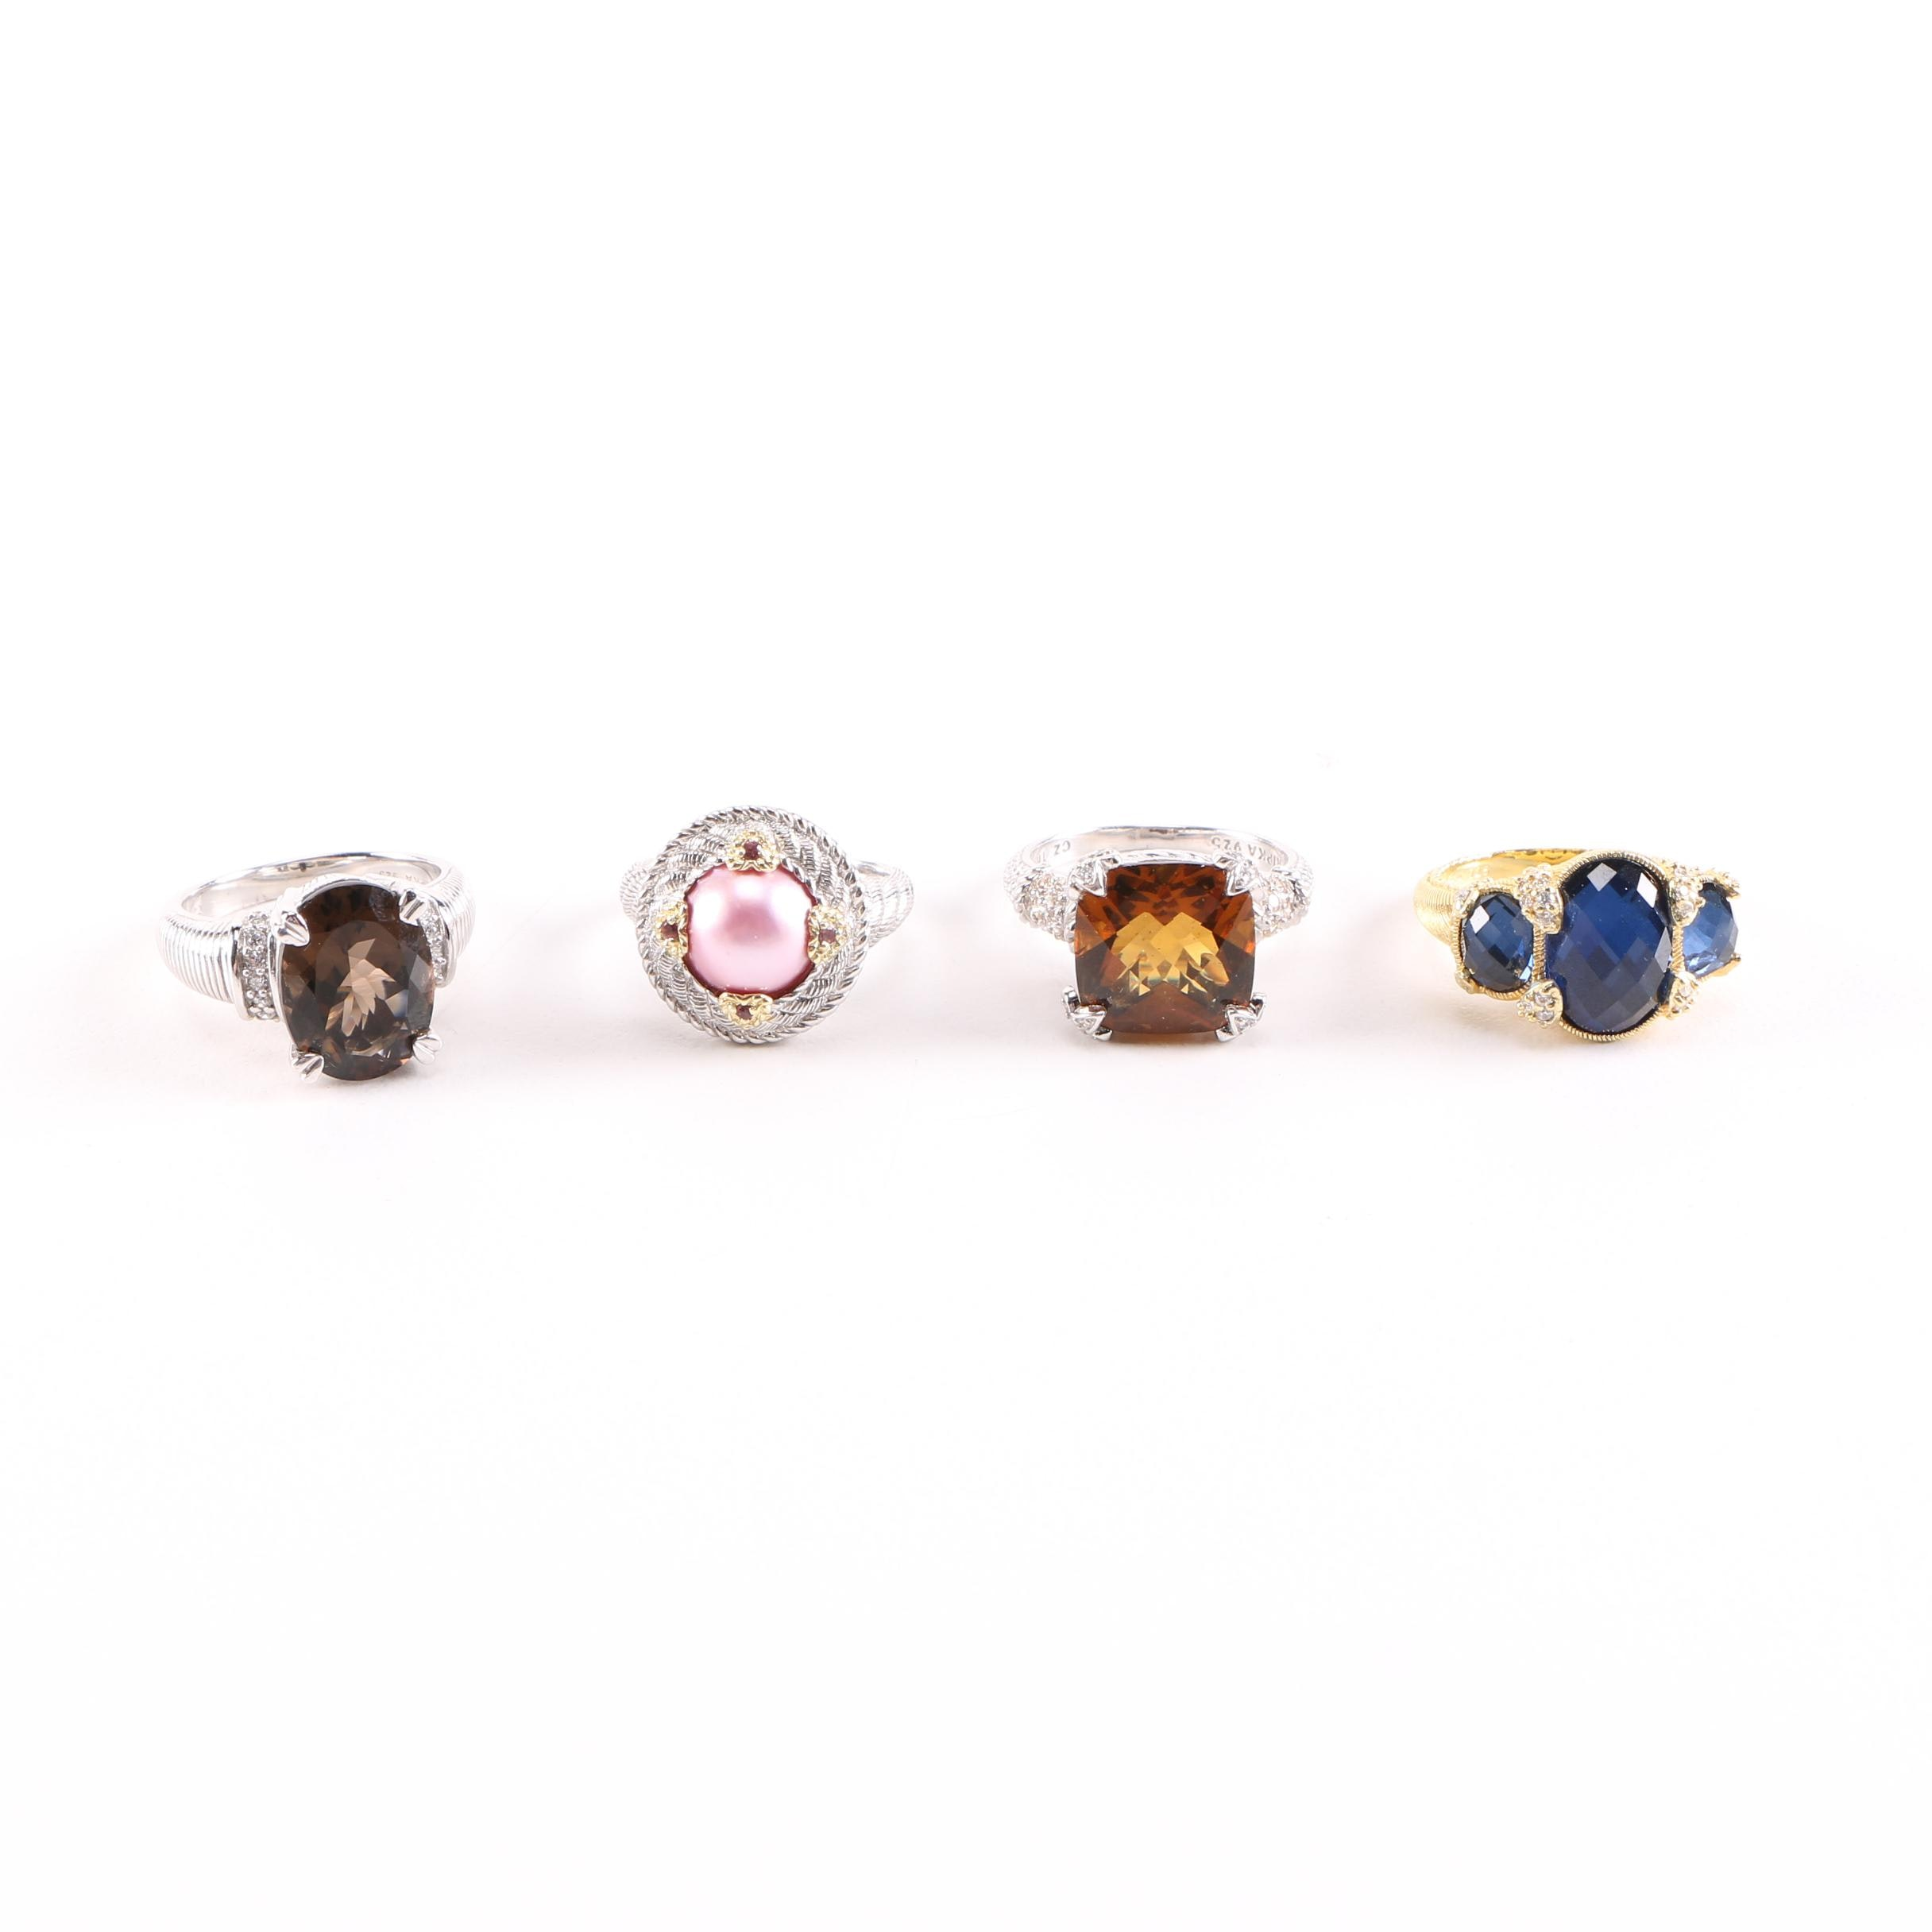 Judith Ripka Sterling Silver Rings Featuring Gemstones and Cultured Pearl